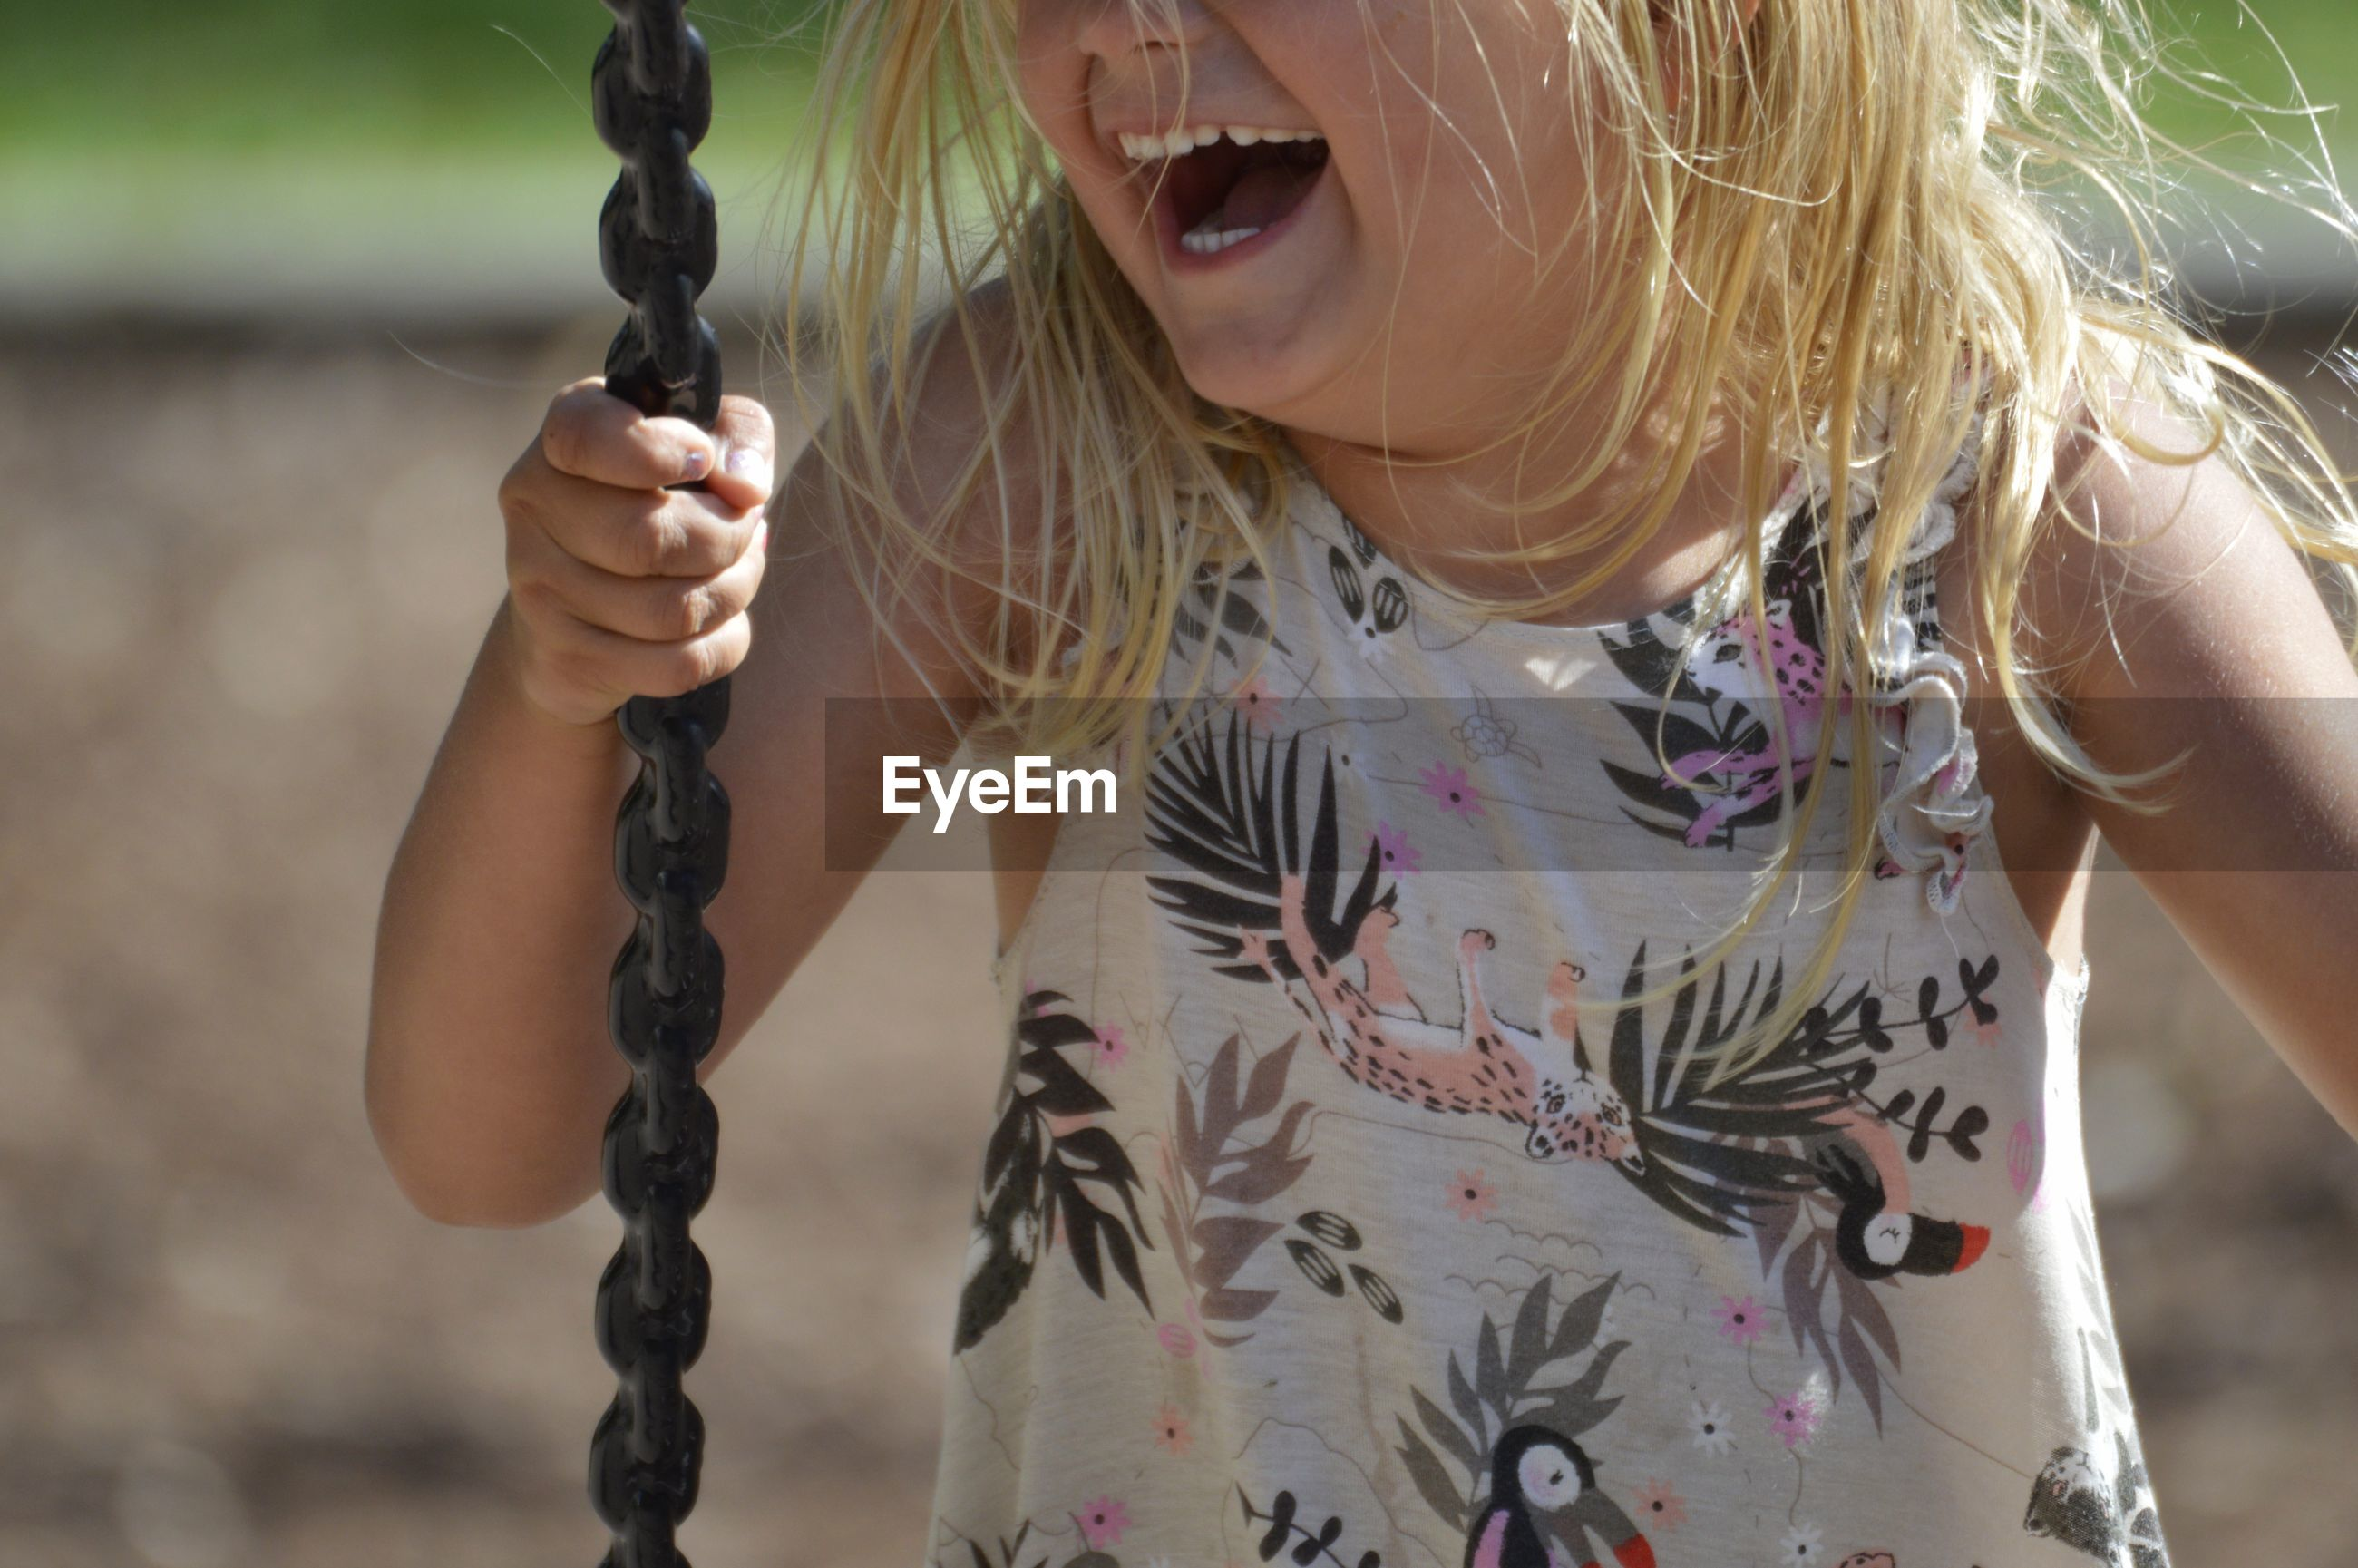 Midsection of cheerful girl on swing